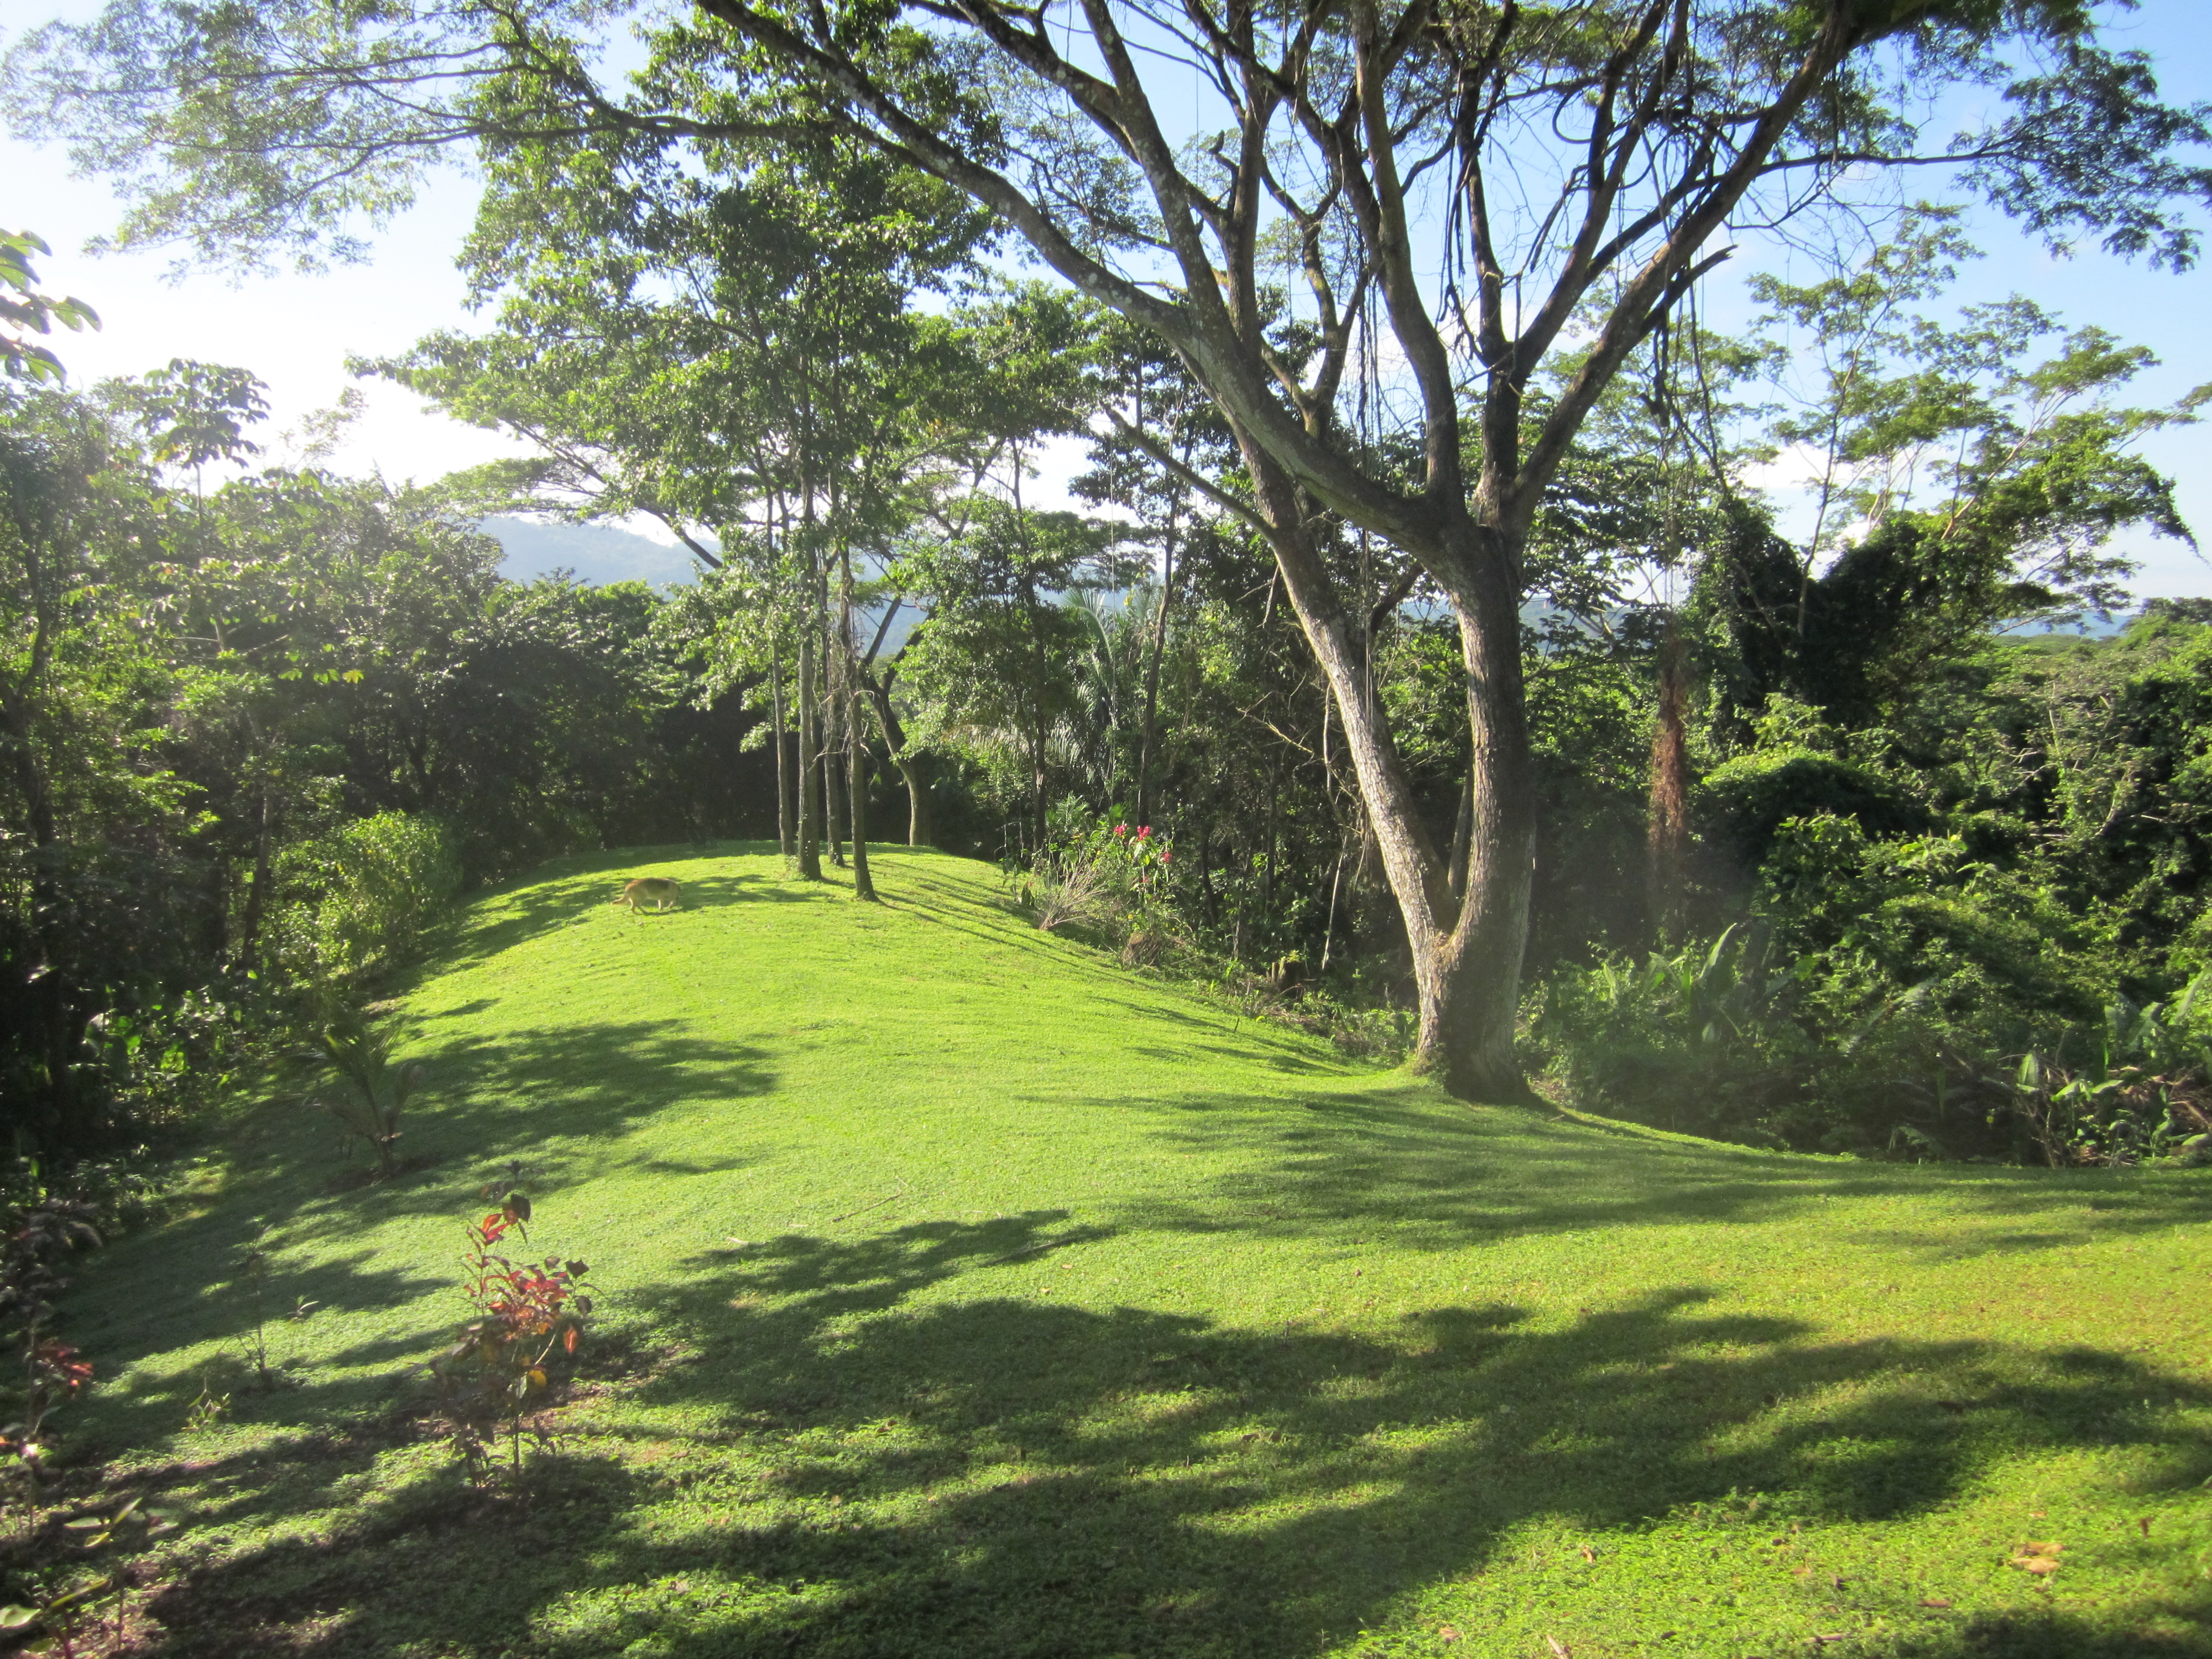 FIRESALE* 18 Acre Private Reserve with Home and Guesthouse. 1 hour from the airport and 20 minute to Los Suenos Resort